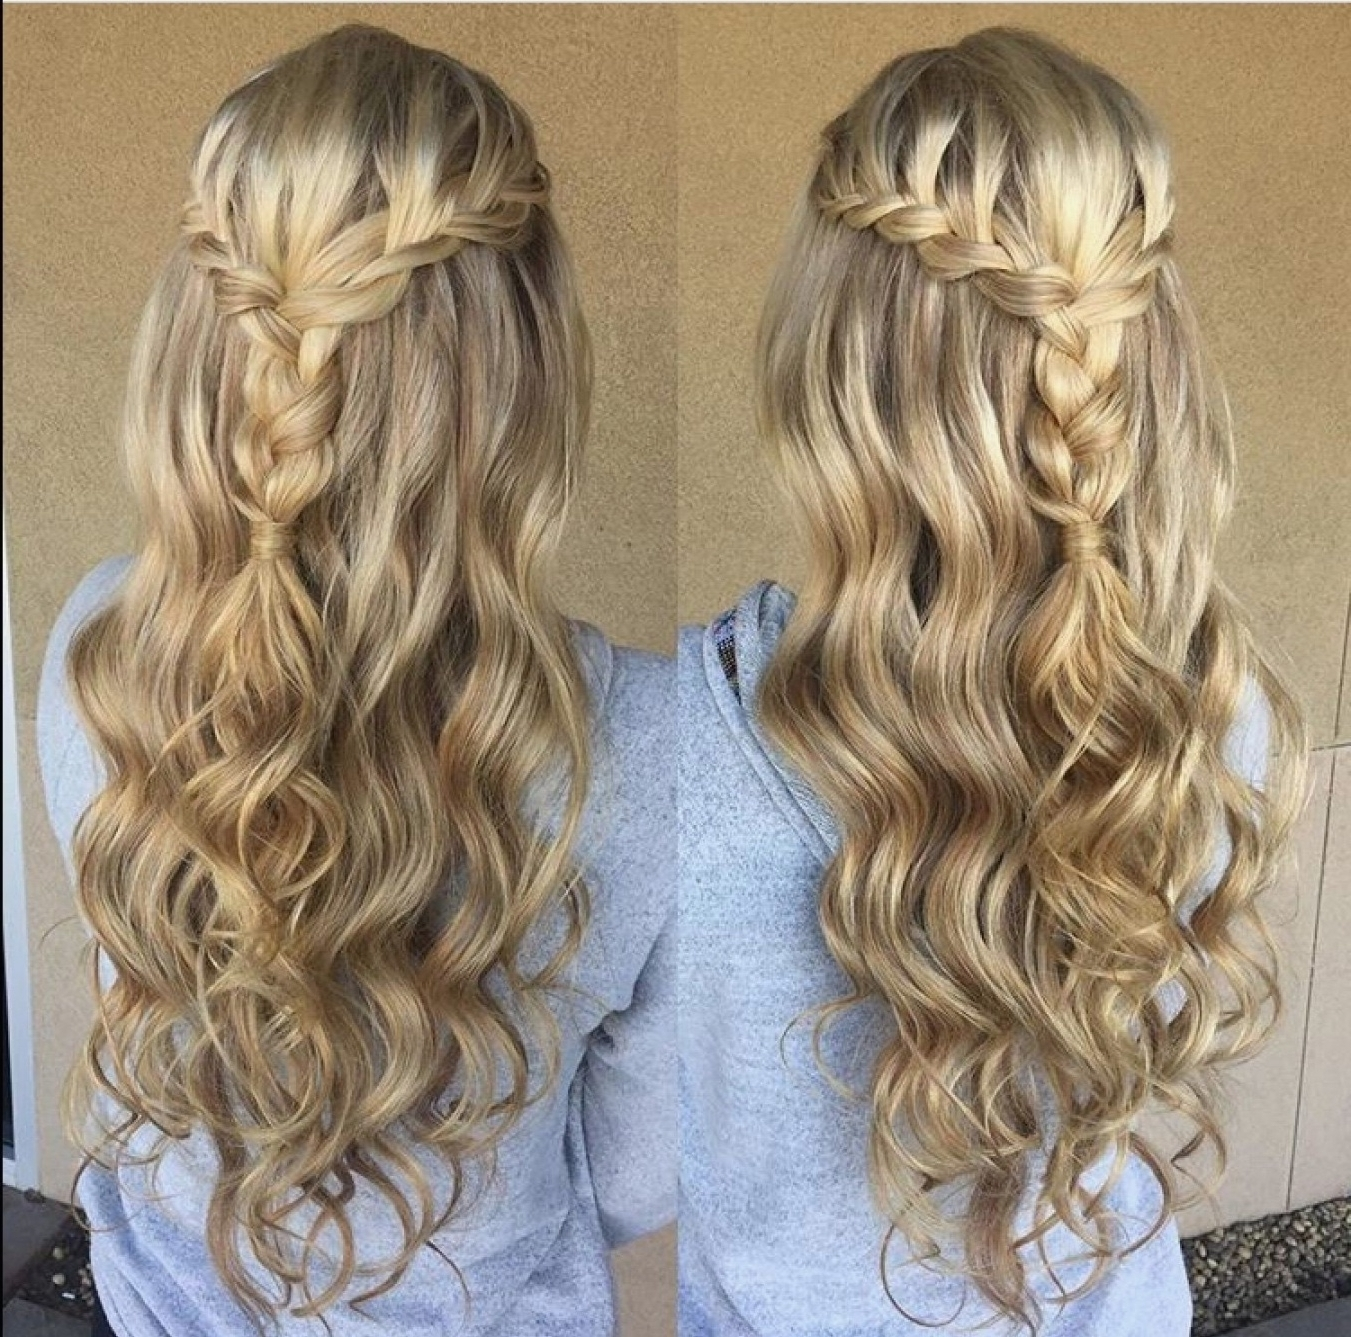 Latest Up Braided Hairstyles With Braid Hairstyles : Cool Half Up Half Down Braided Prom Hairstyles In (View 15 of 15)